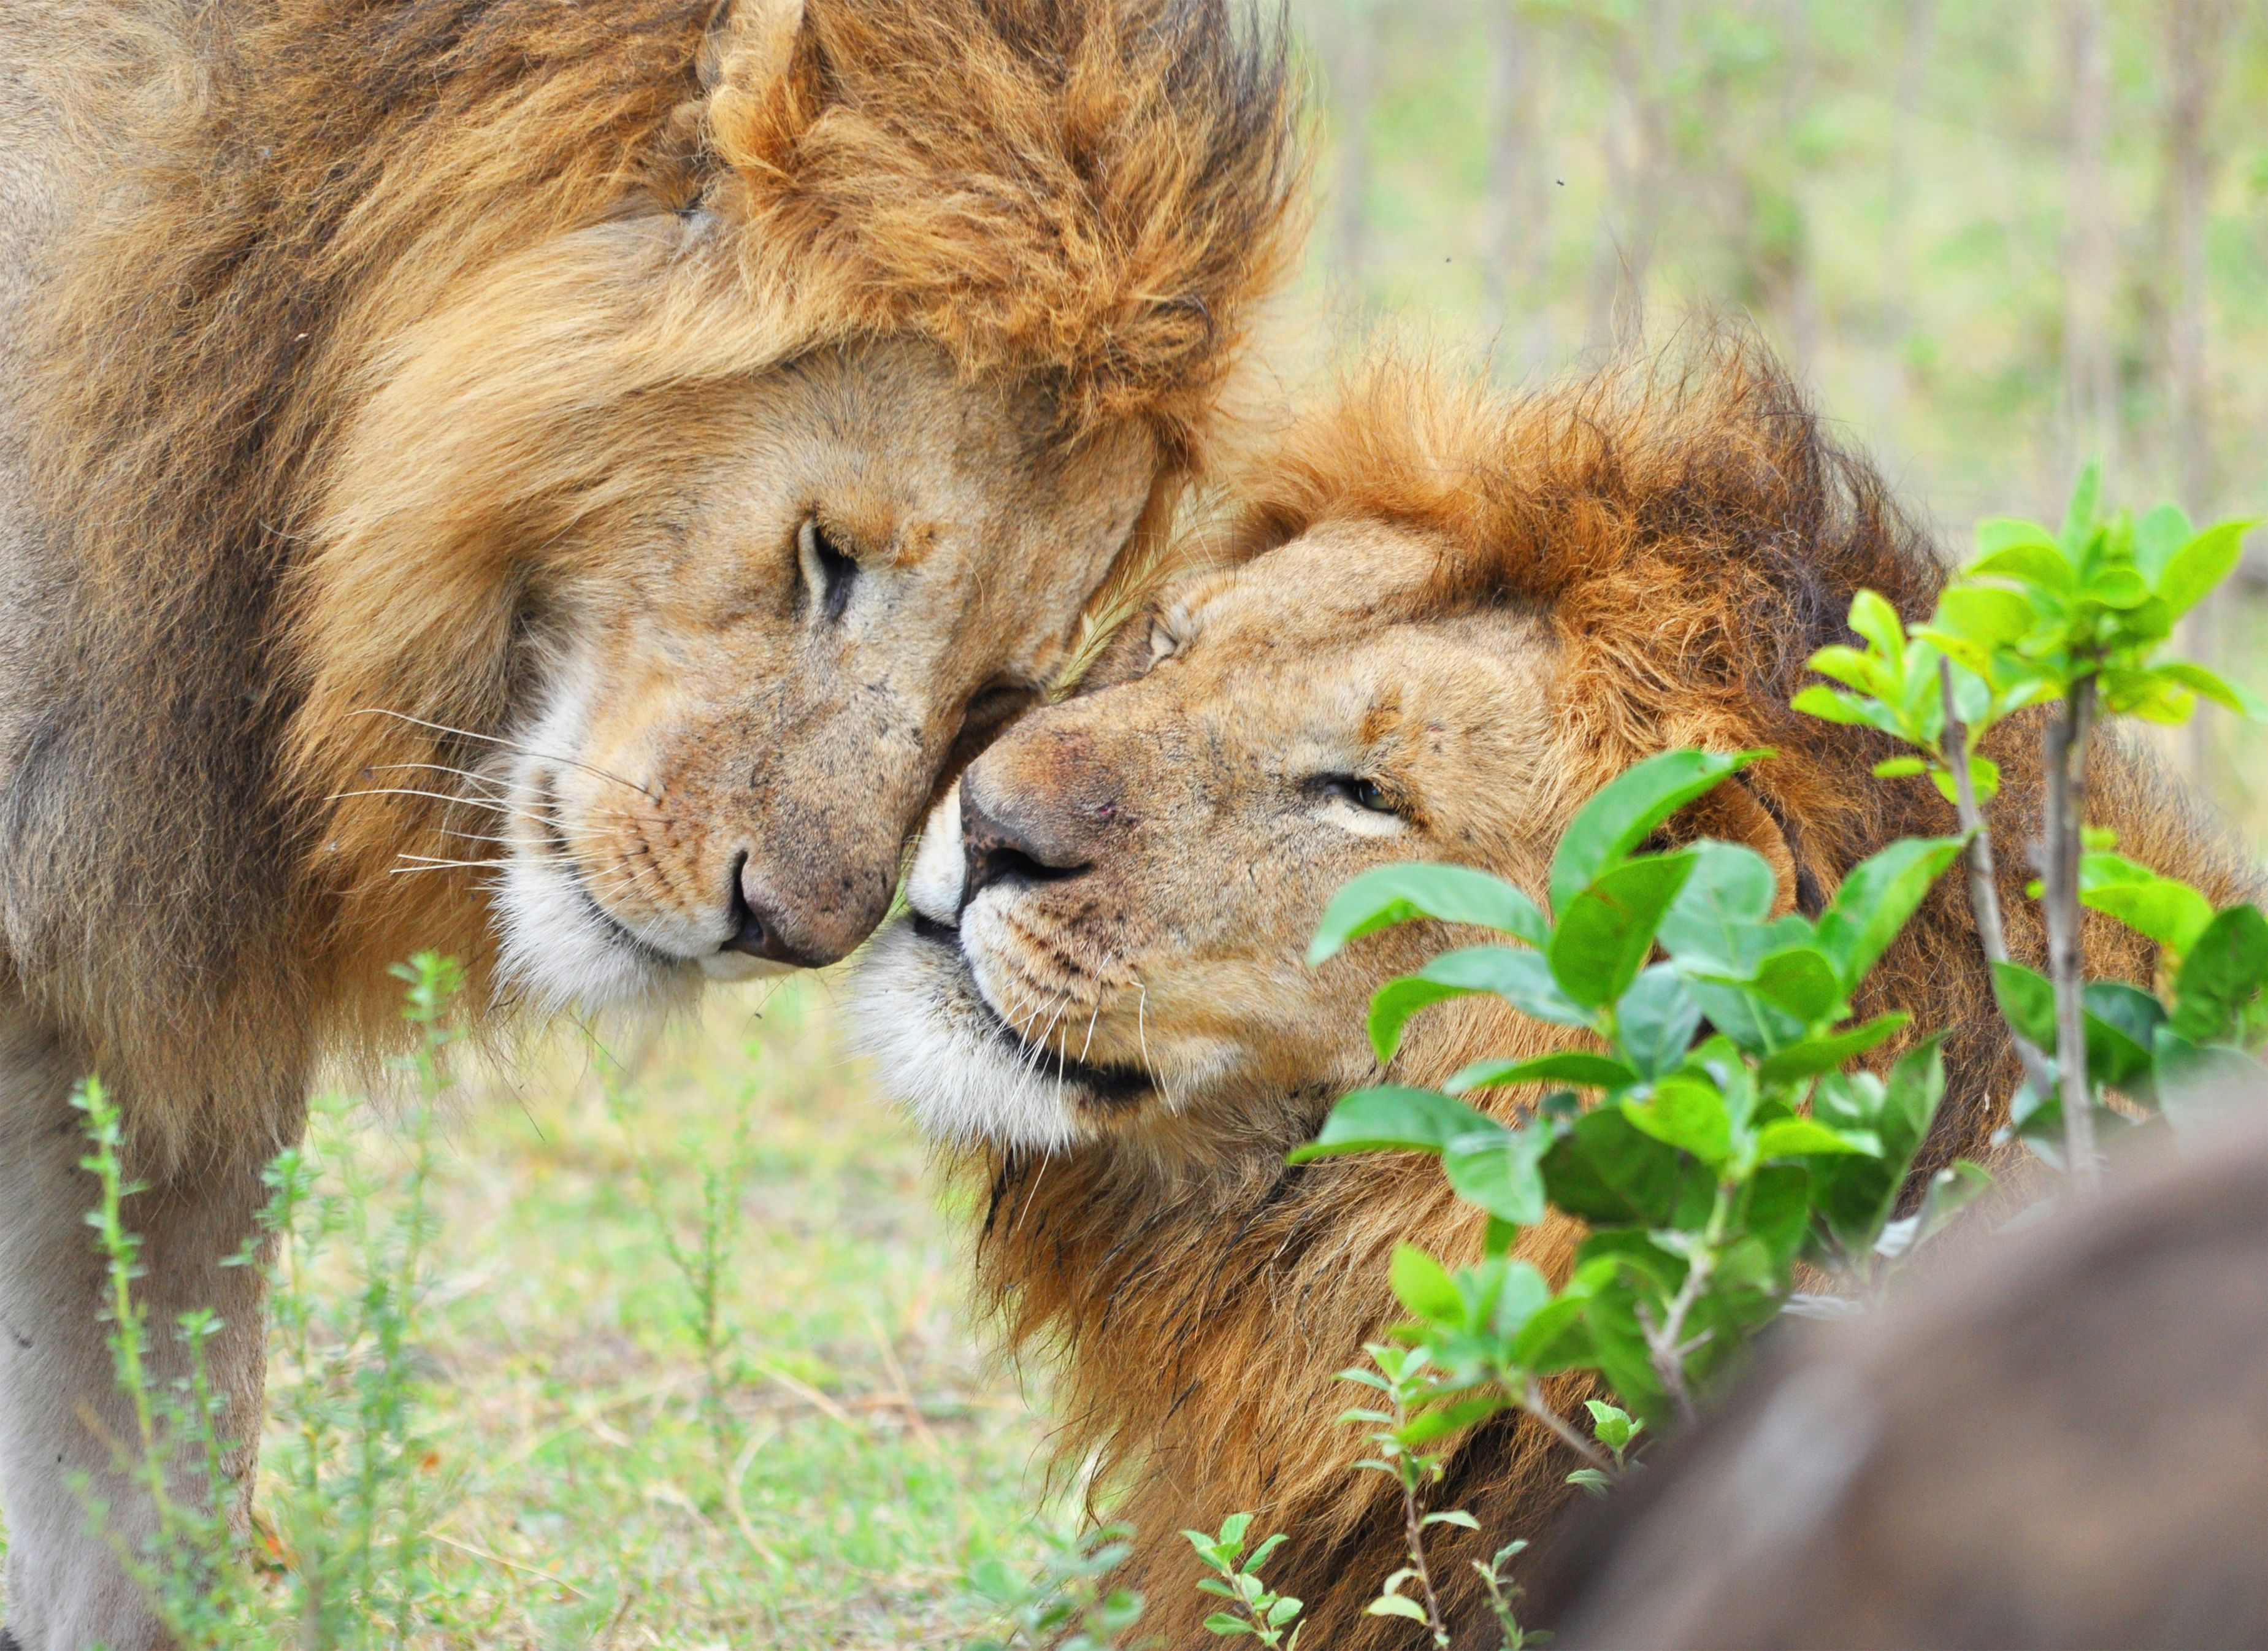 When lions and other cats rub heads, they exchange scent markers.